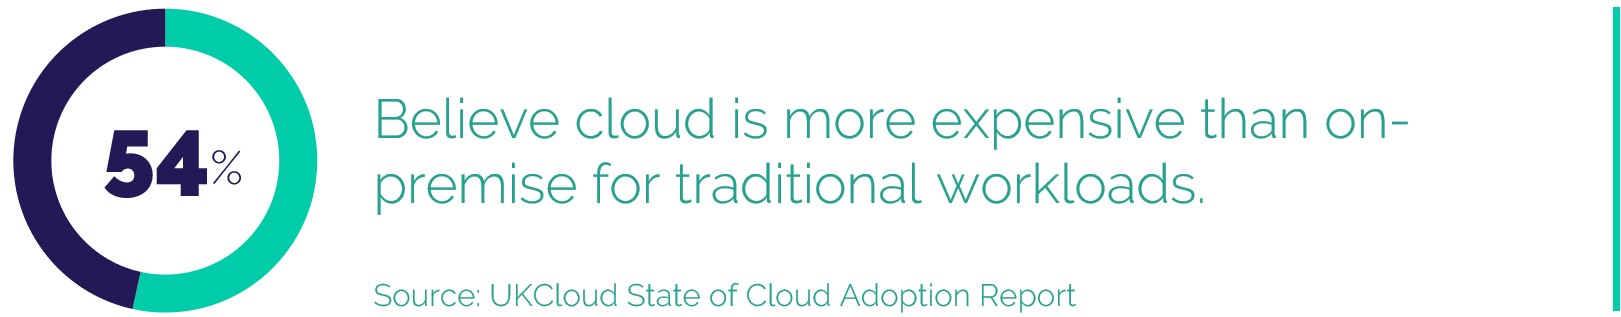 54% Believe cloud is more expensive than on-premise for traditional workloads.